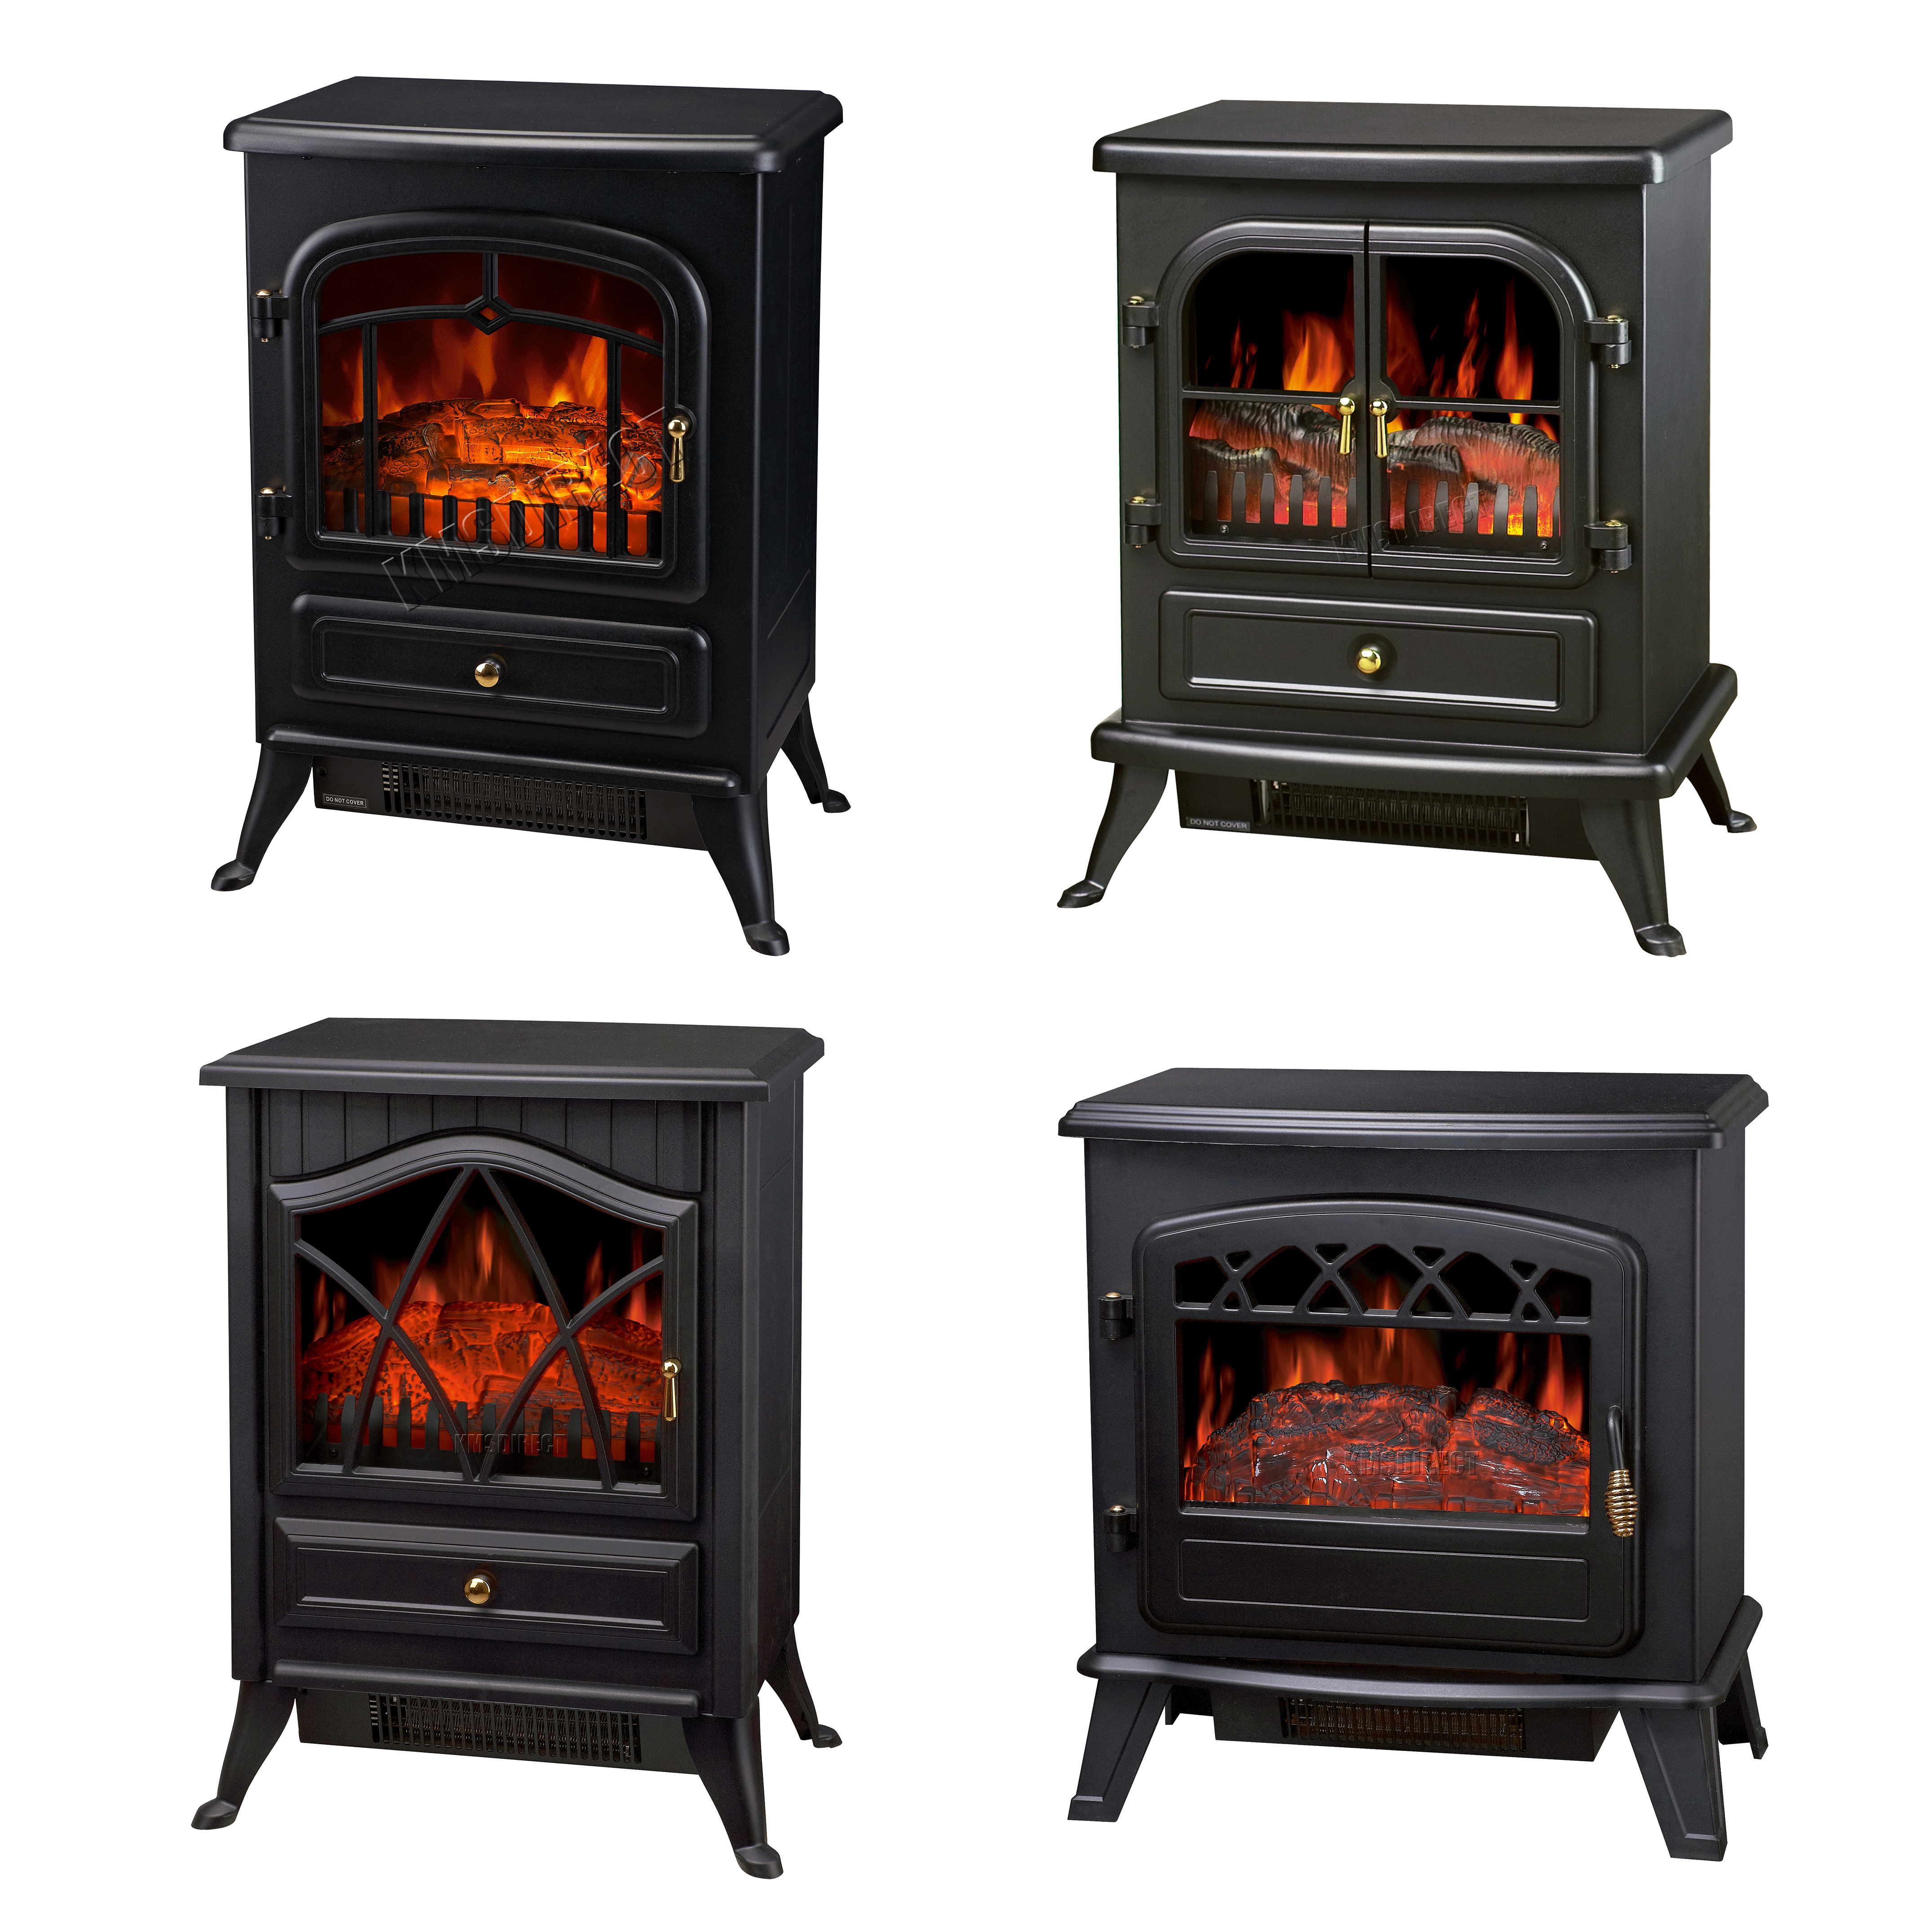 Fireplace Doesnt Heat: New 1850W Log Burning Flame Effect Stove Electric Fire